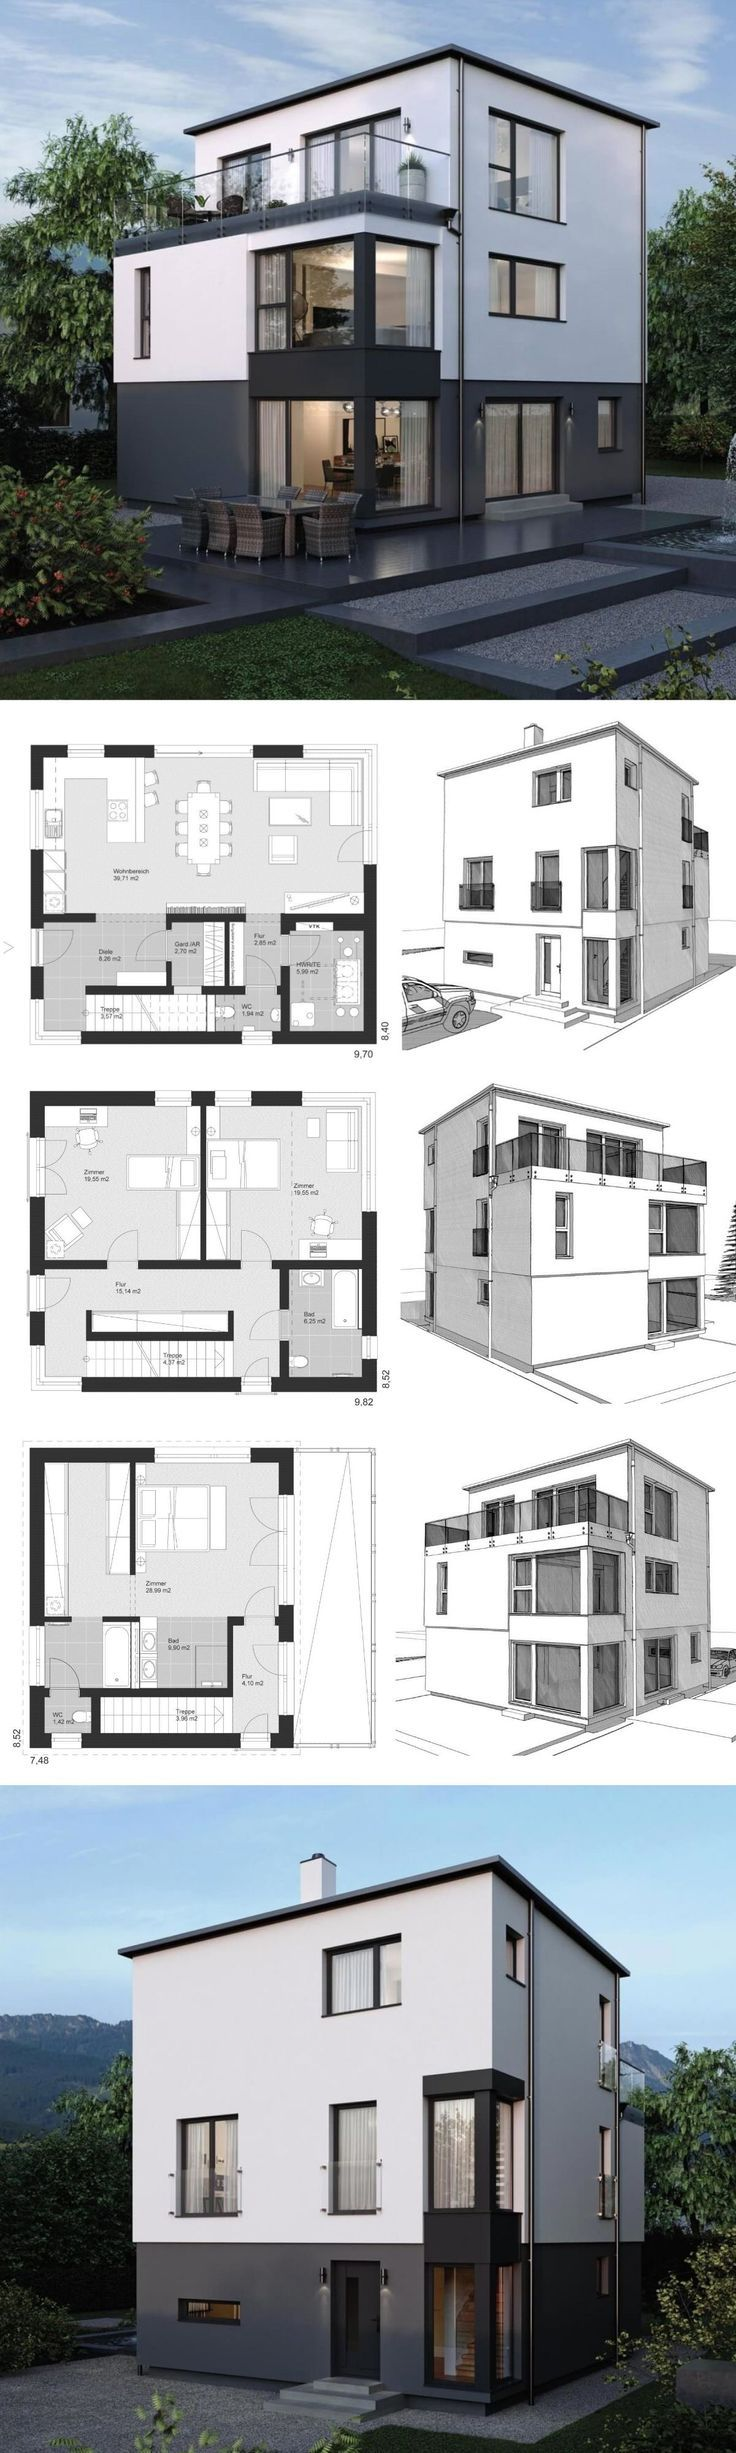 Modern Architecture Design House Plans ELK Haus 178 – Dream Home Ideas with Open…